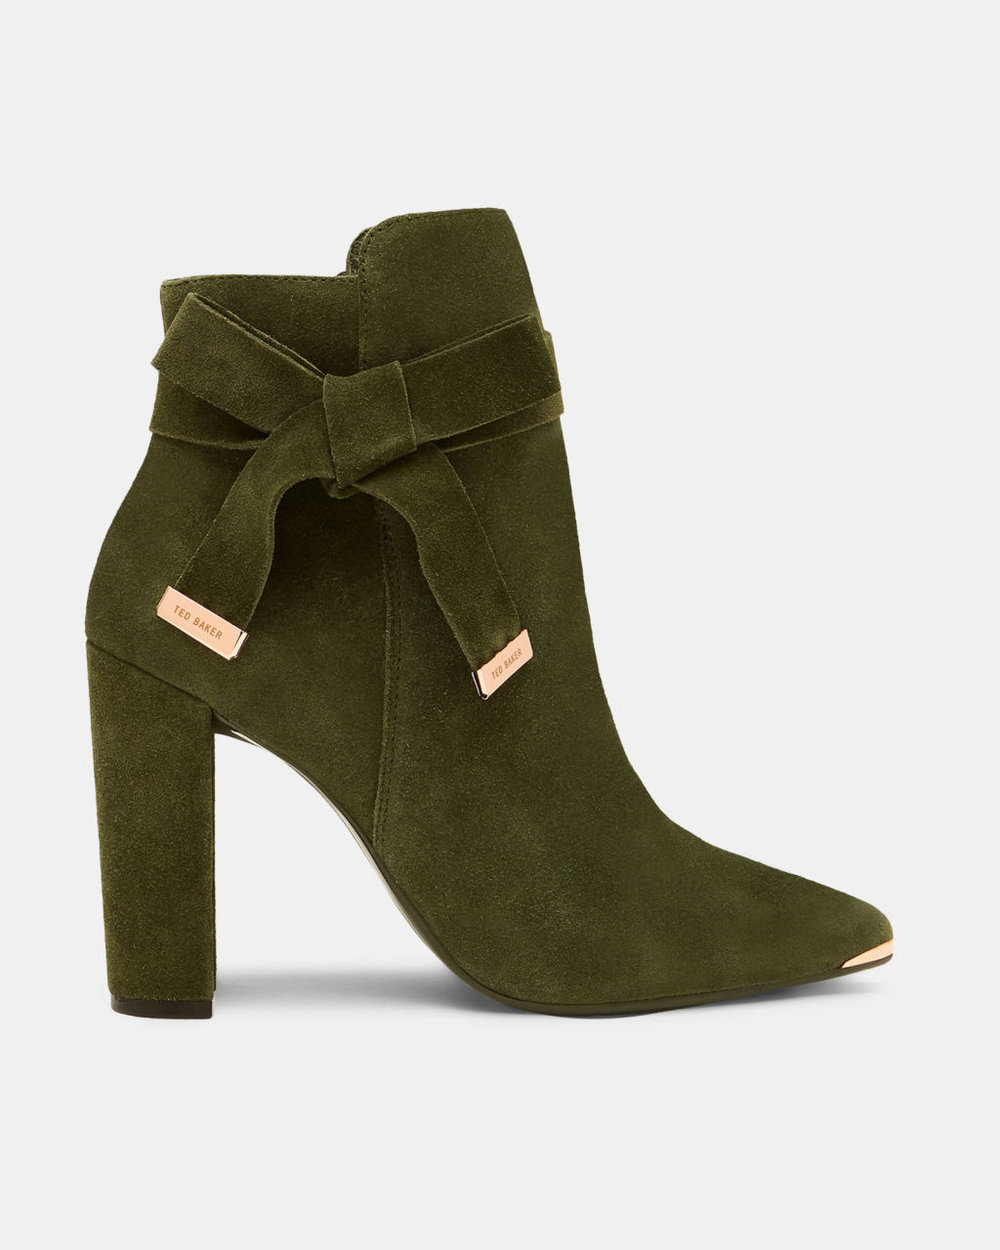 uk-Womens-Shoes-SAILLY-Bow-detail-suede-ankle-boots-Khaki-HA7W_SAILLY_KHAKI_1.jpg.jpg